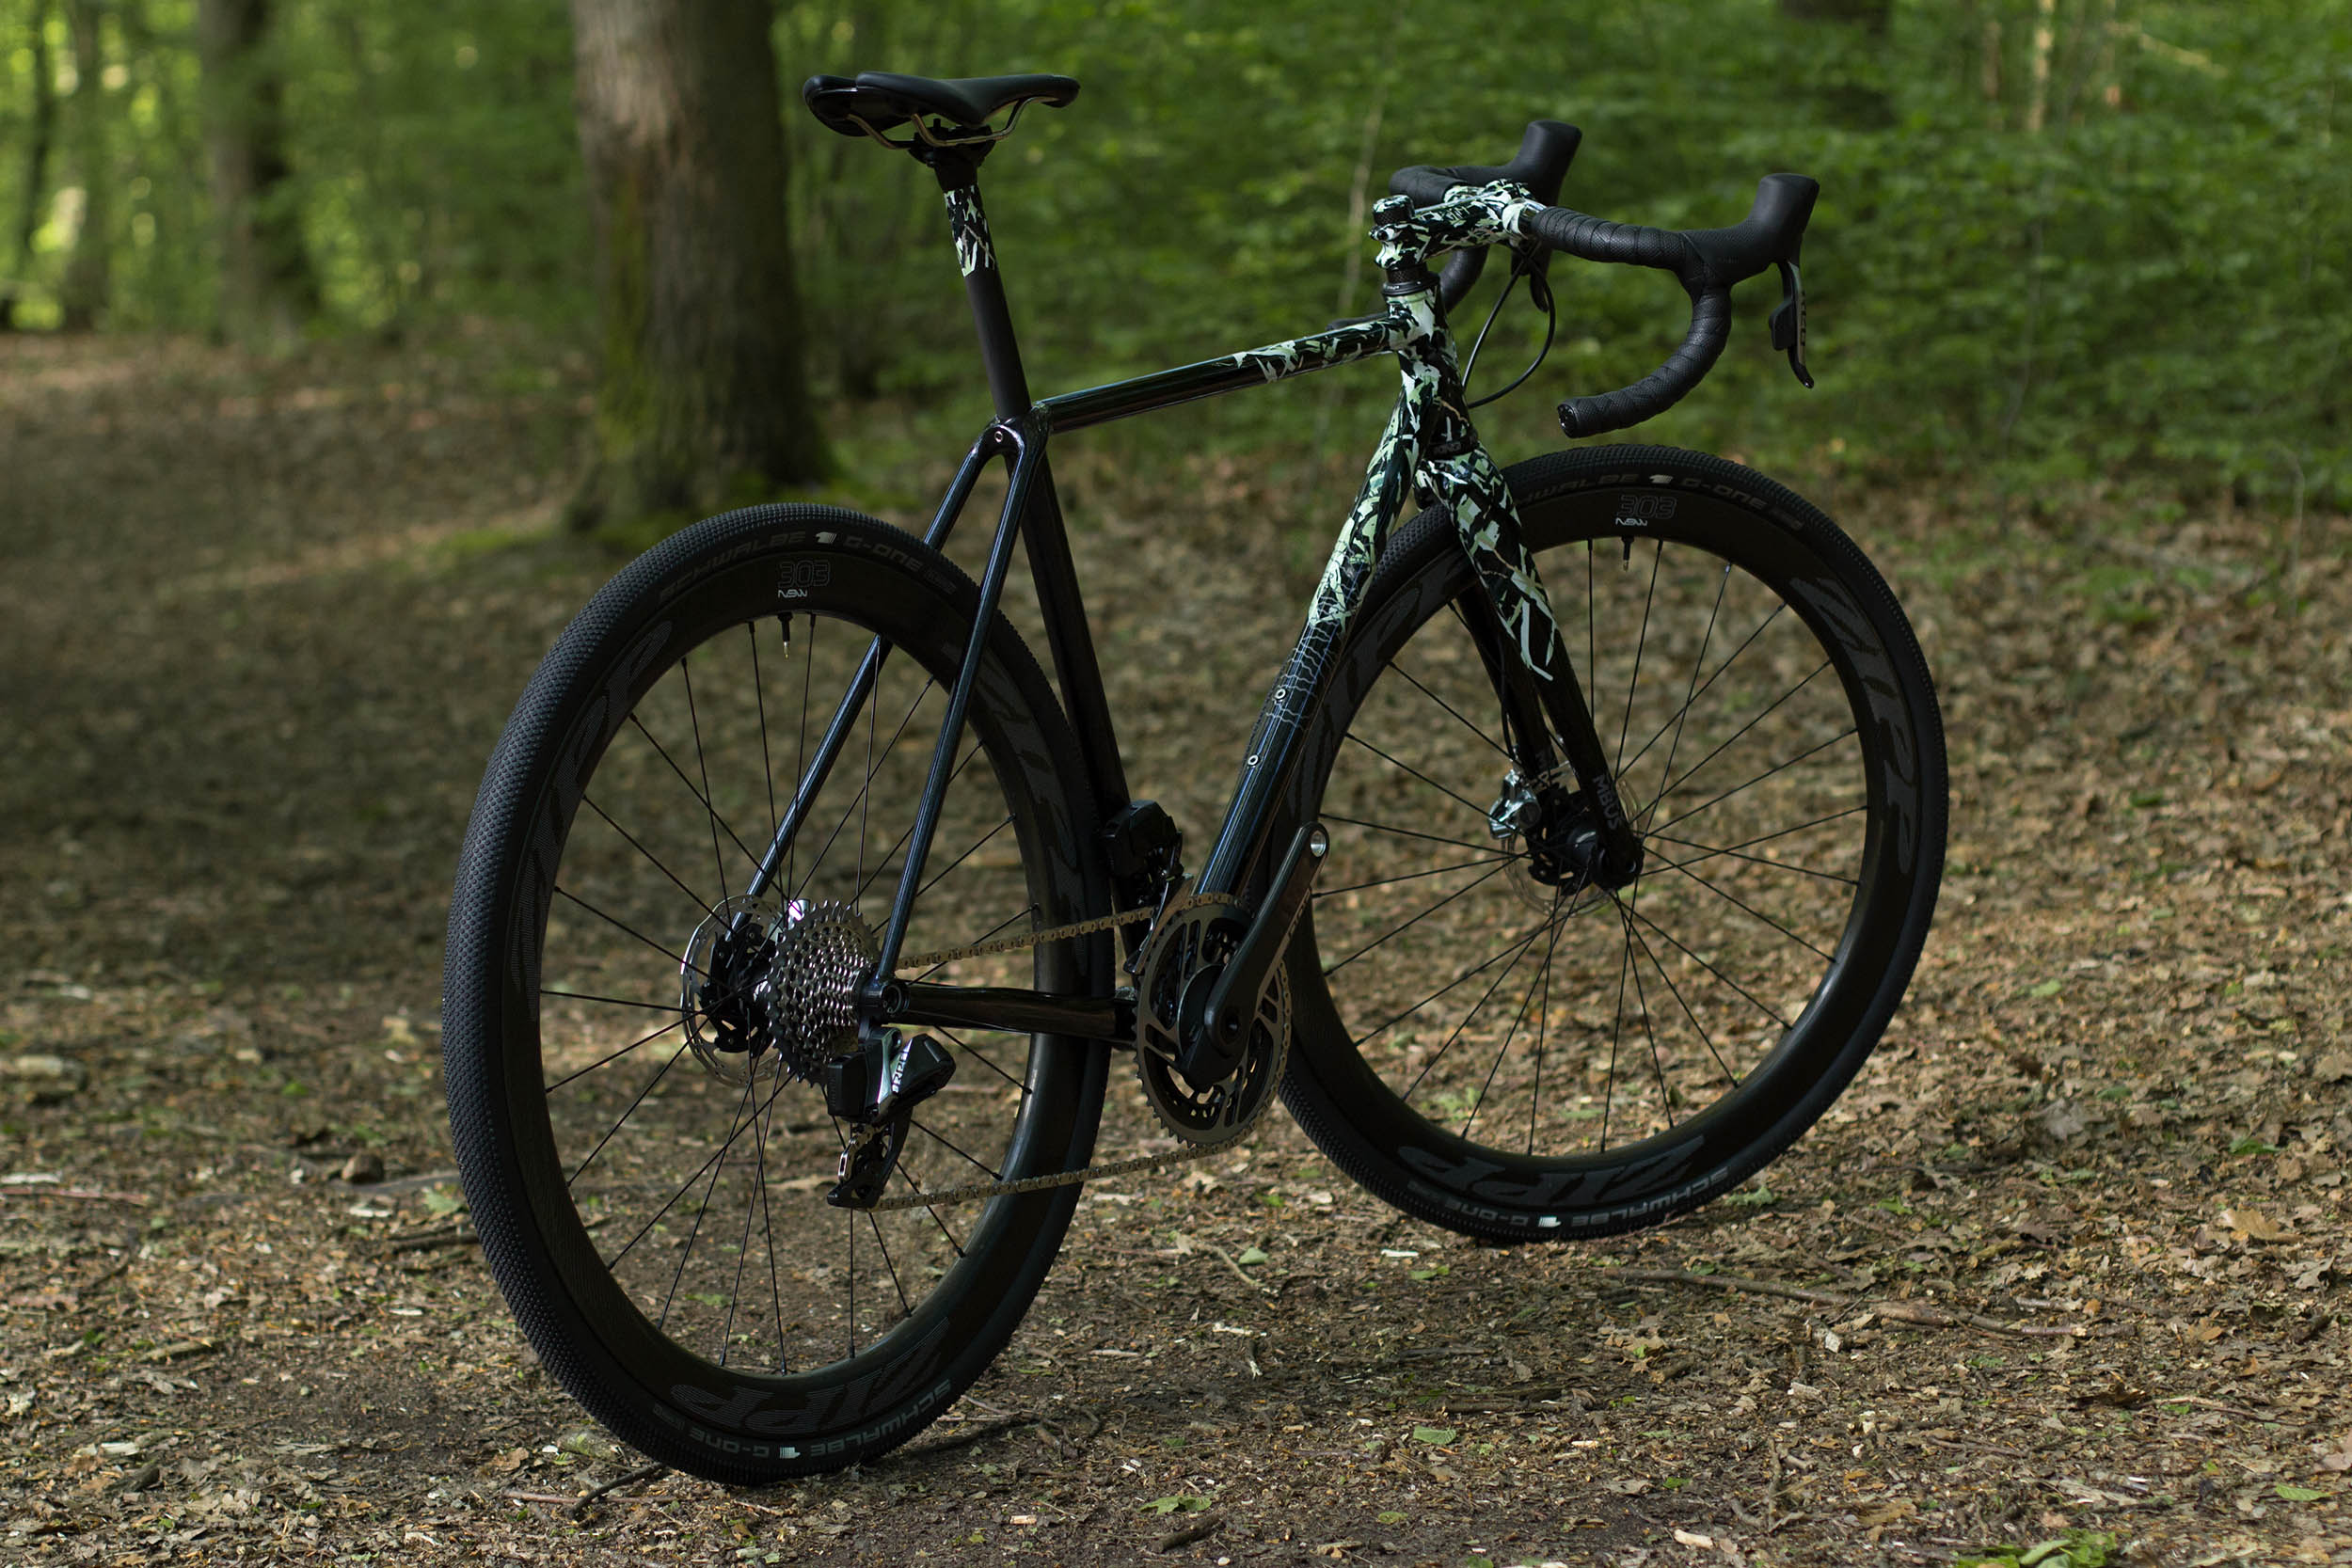 quirk_cycles_mamtor_3DPrinted_build_16.jpg